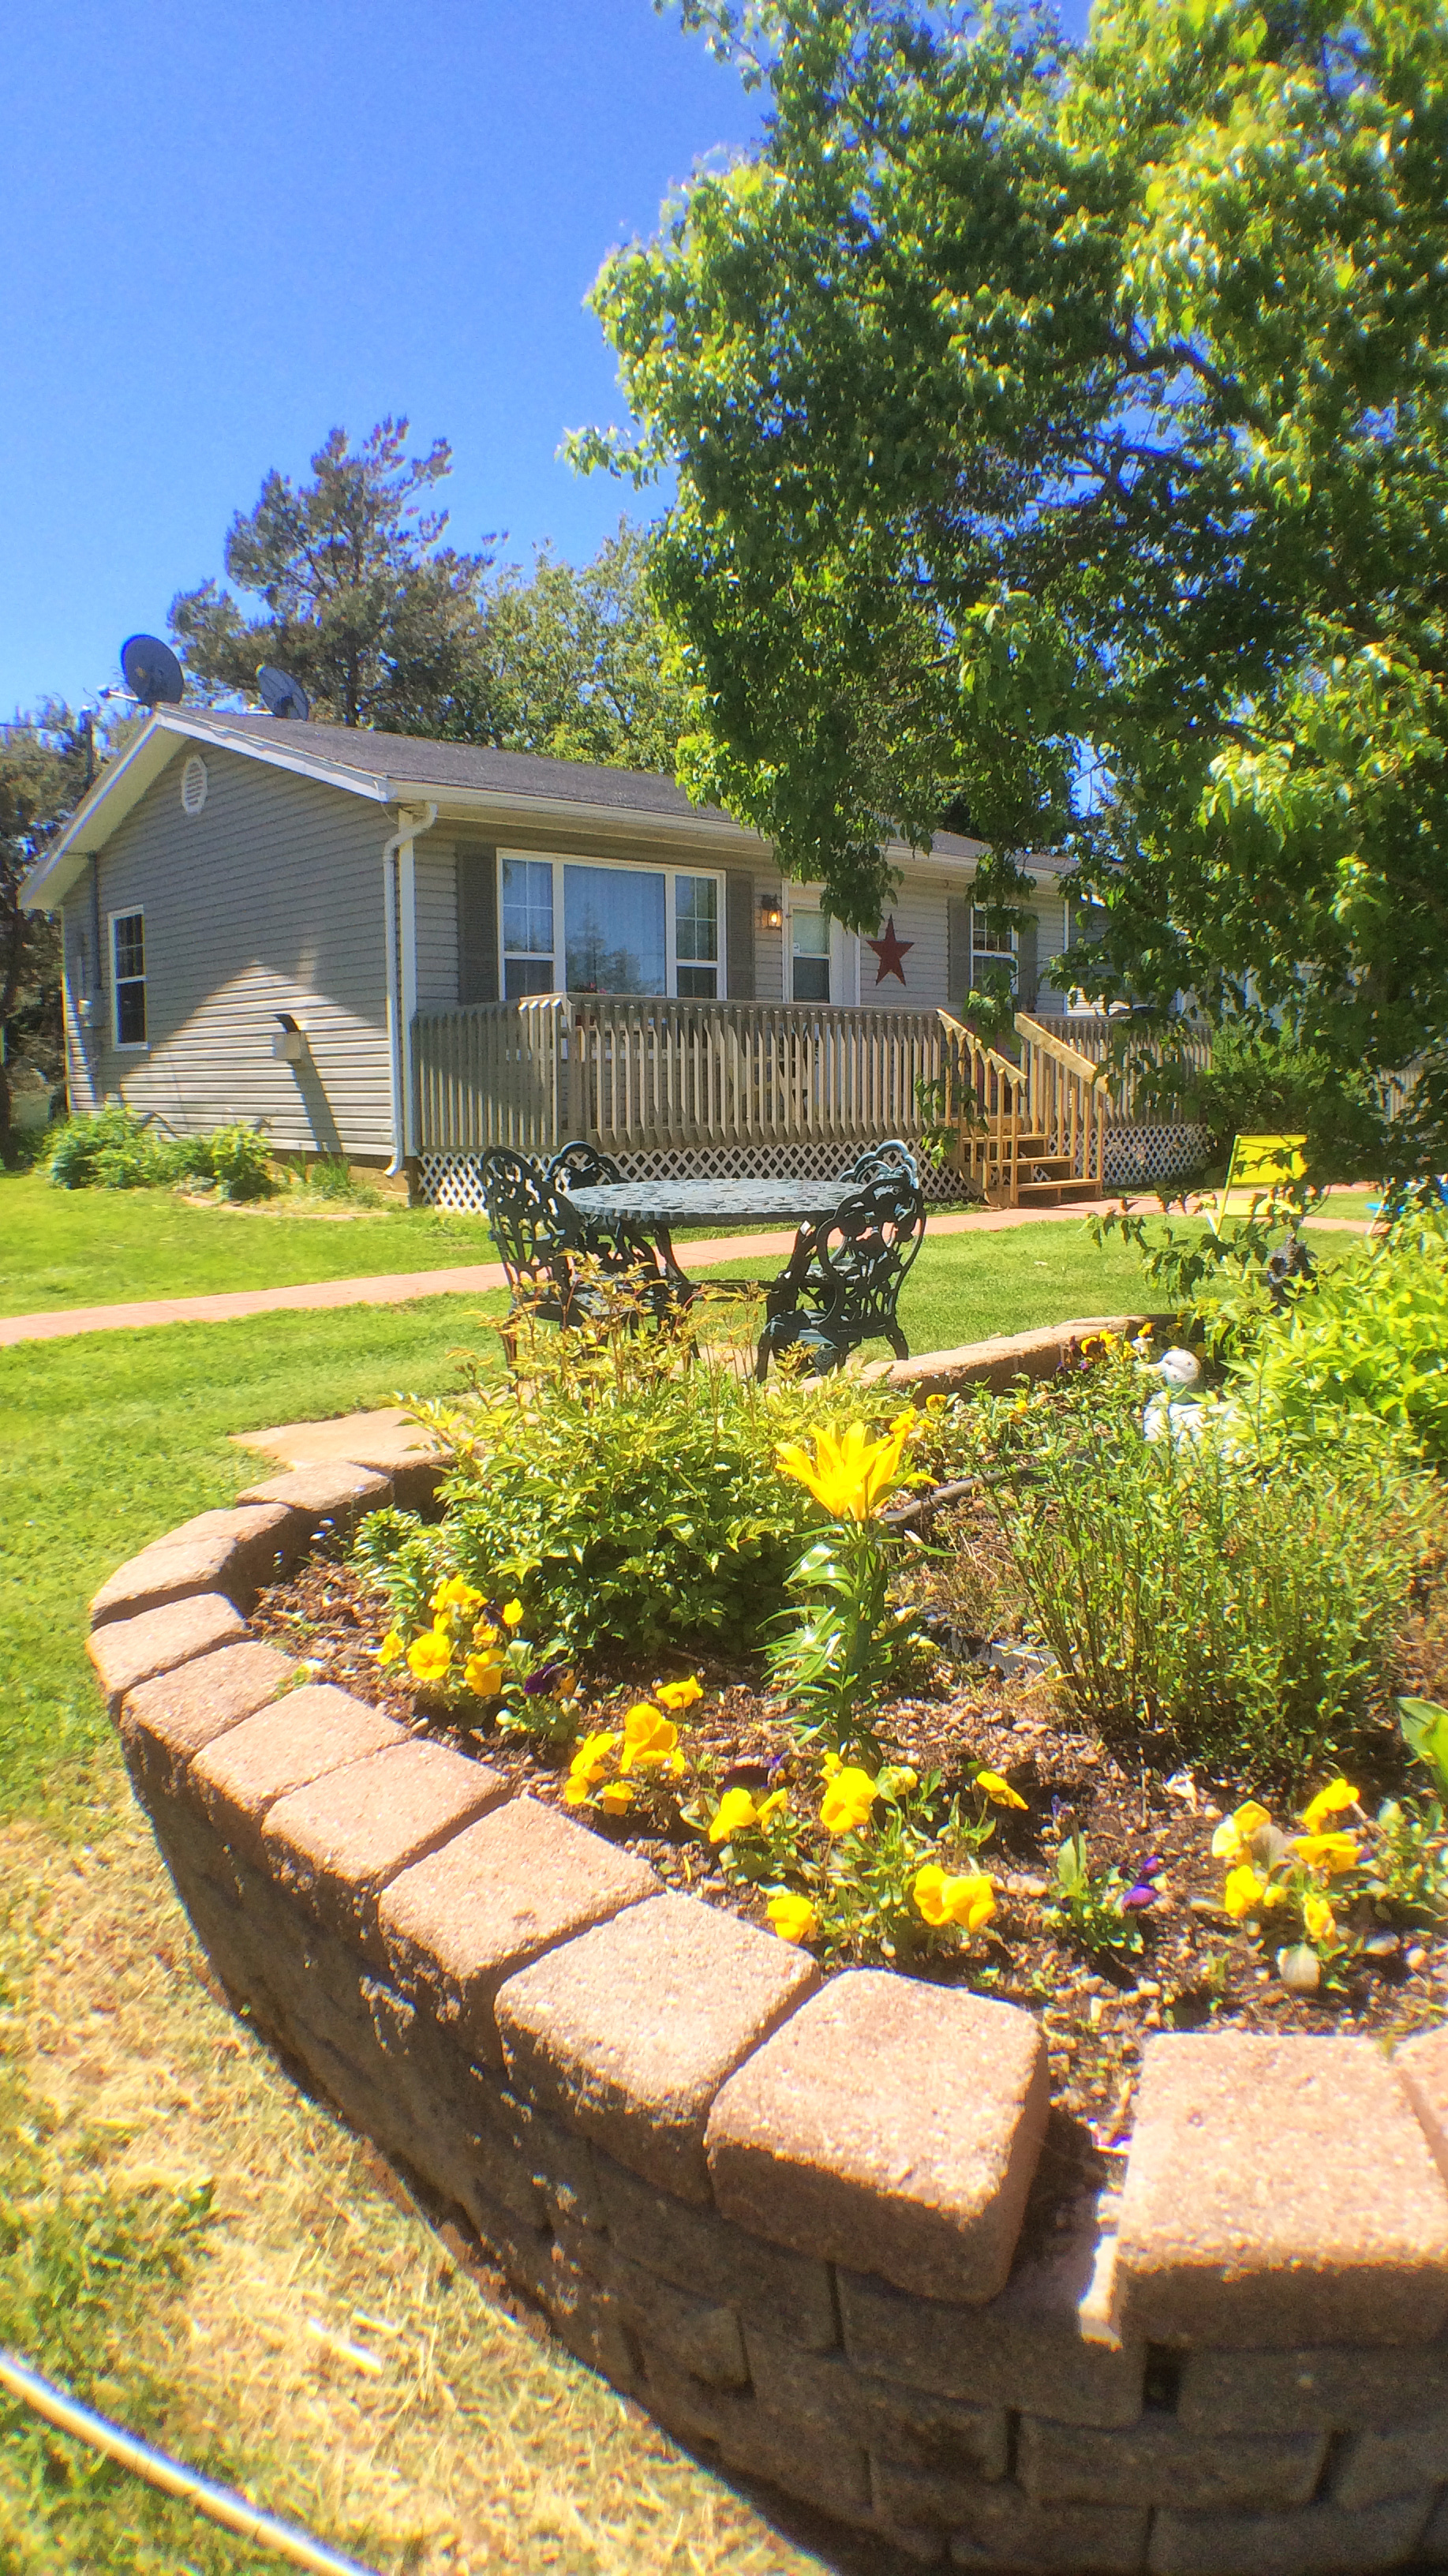 View of garden in front of cottages